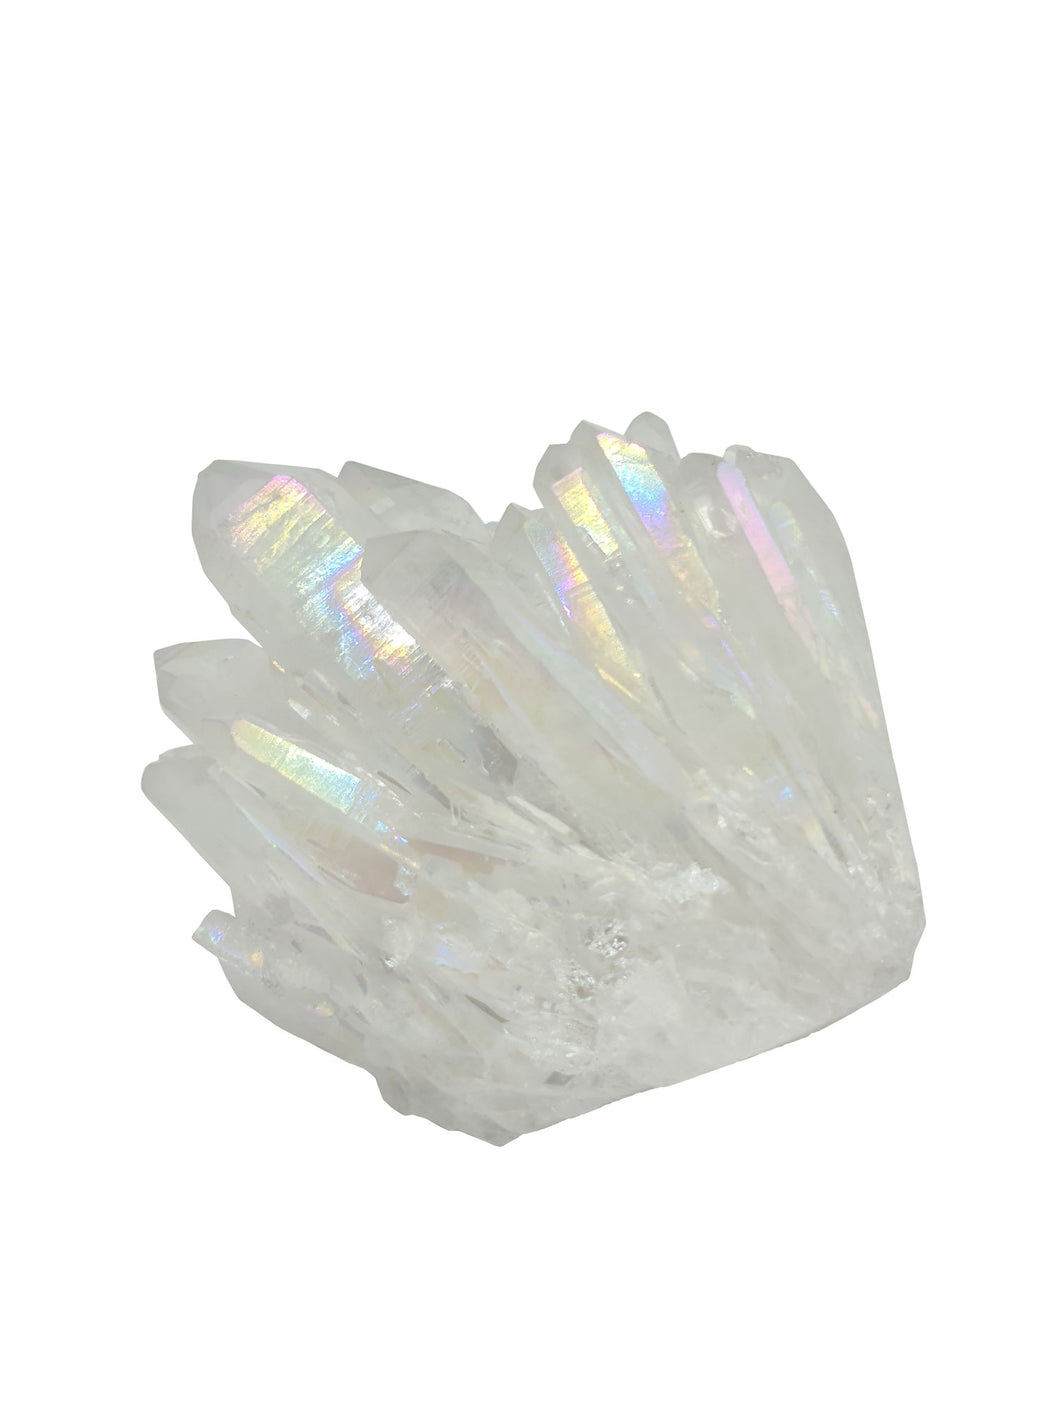 Angel Aura Quartz-Oddball Crystals